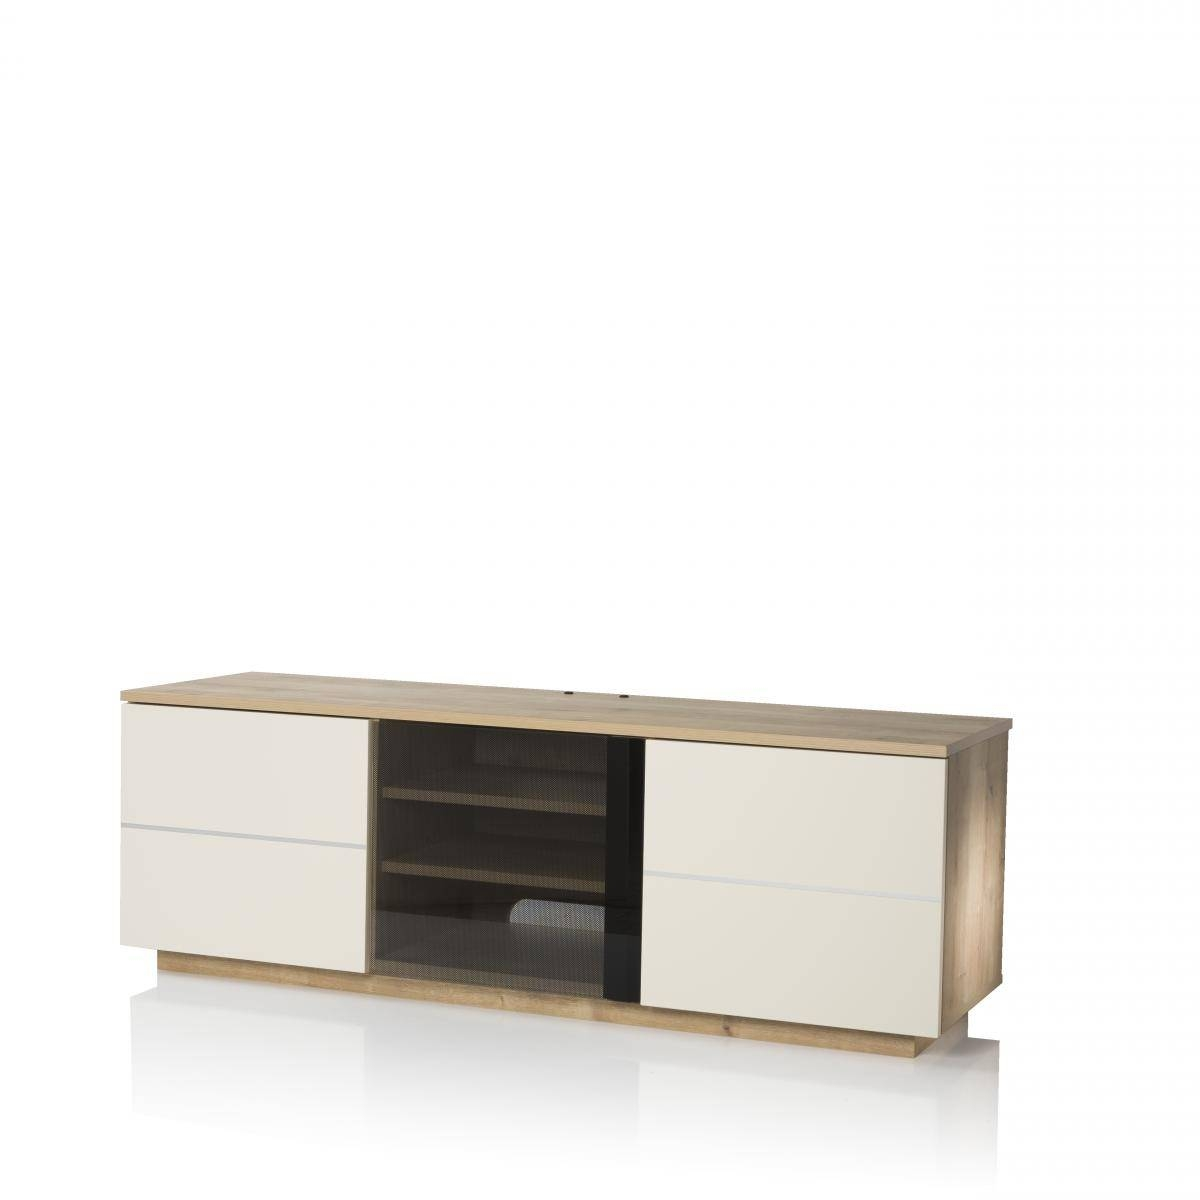 New London 150Cm Tv Cabinet Oak /cream | Nldn Oak Cr Inside 150Cm Tv Unit (Photo 10 of 15)